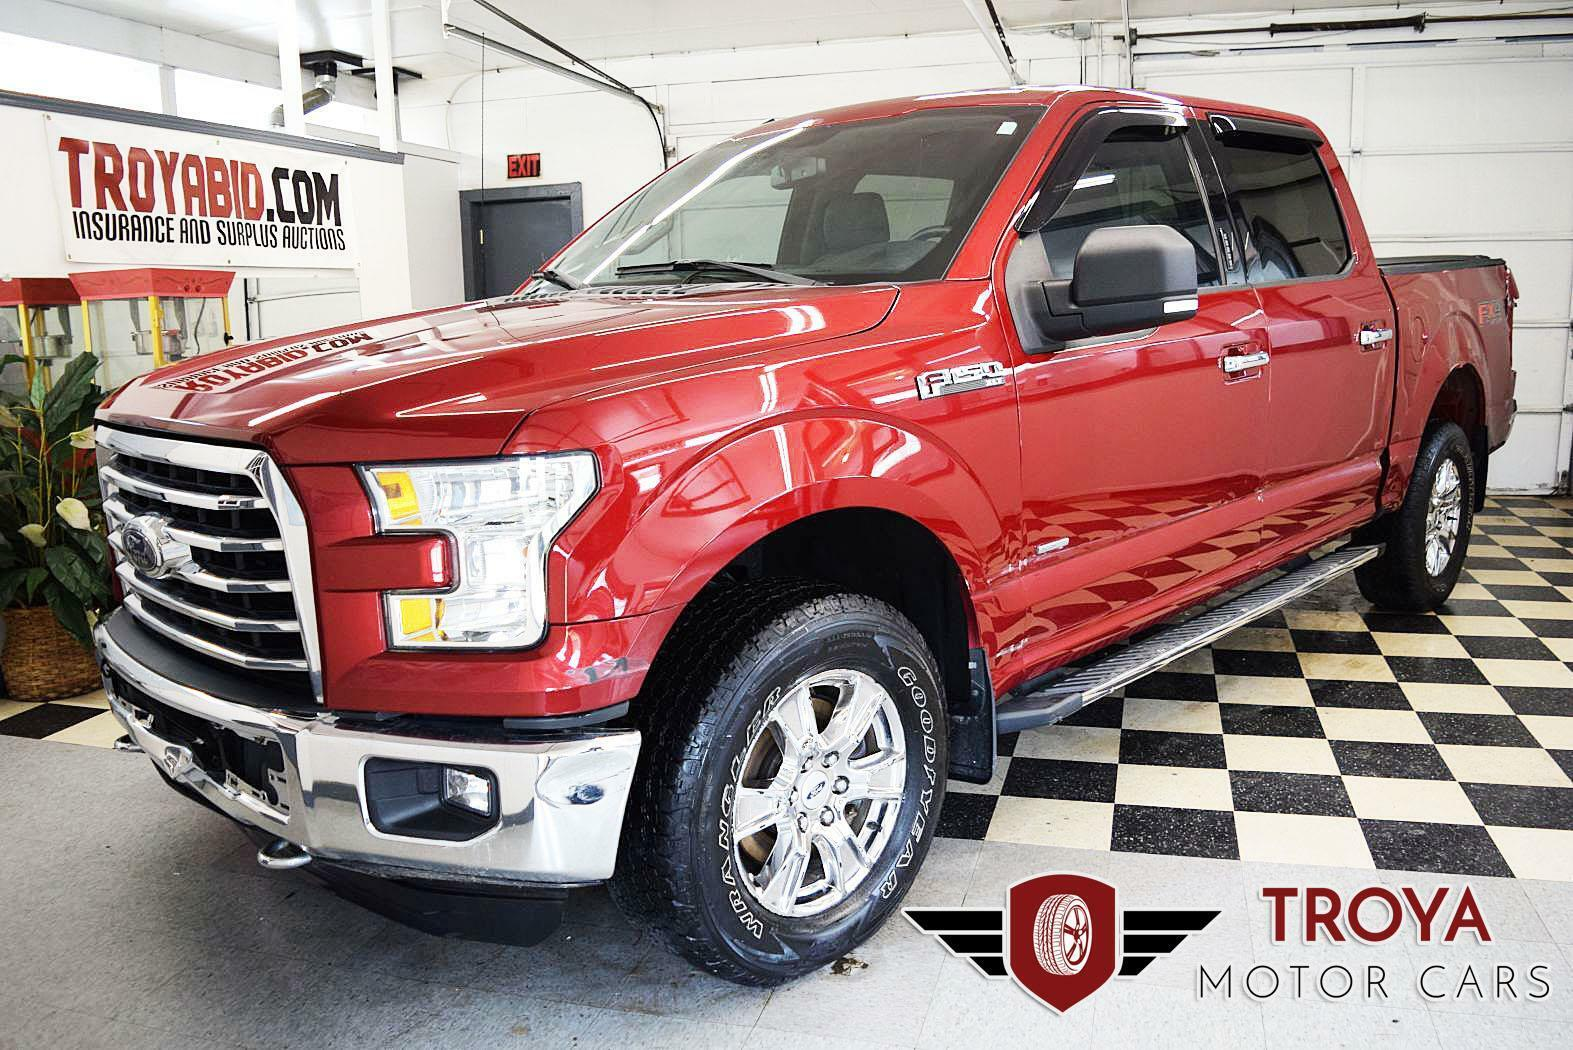 2015 Ford F-150 XLT 4x4 Crew Repairable Salvage Truck Rebuildable Damaged